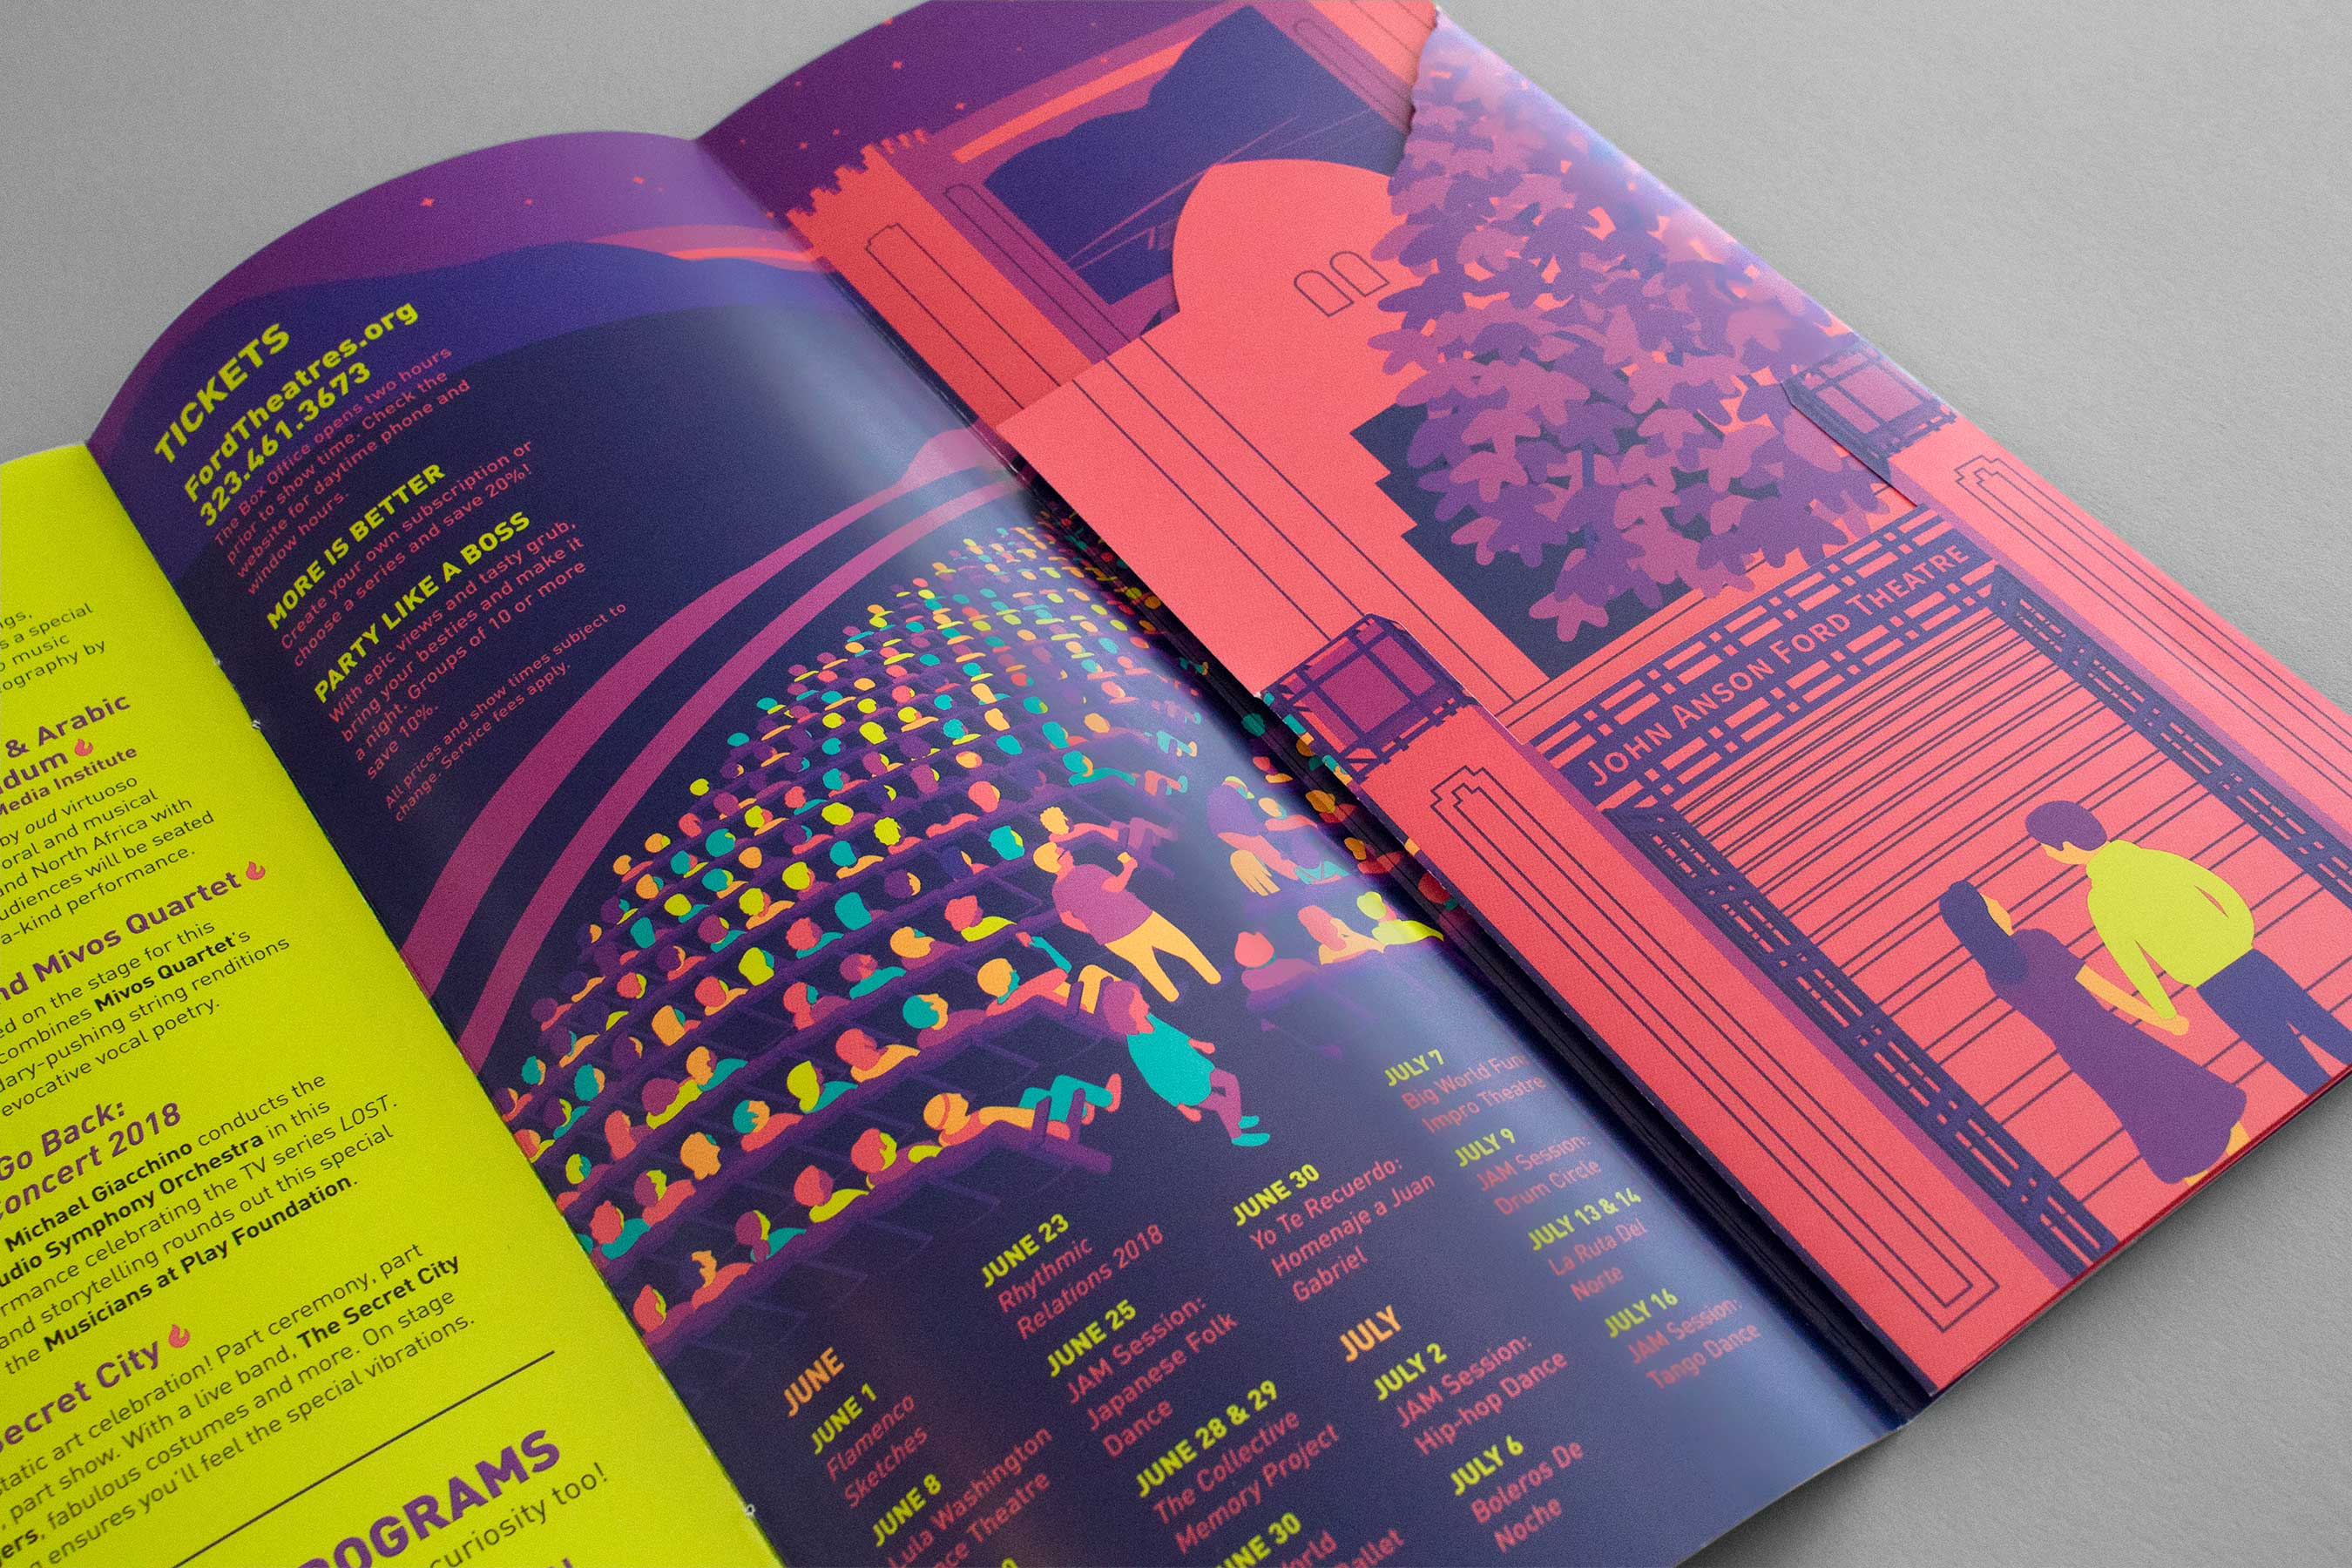 an illustrated brochure lies open on a table, revealing part of an audience